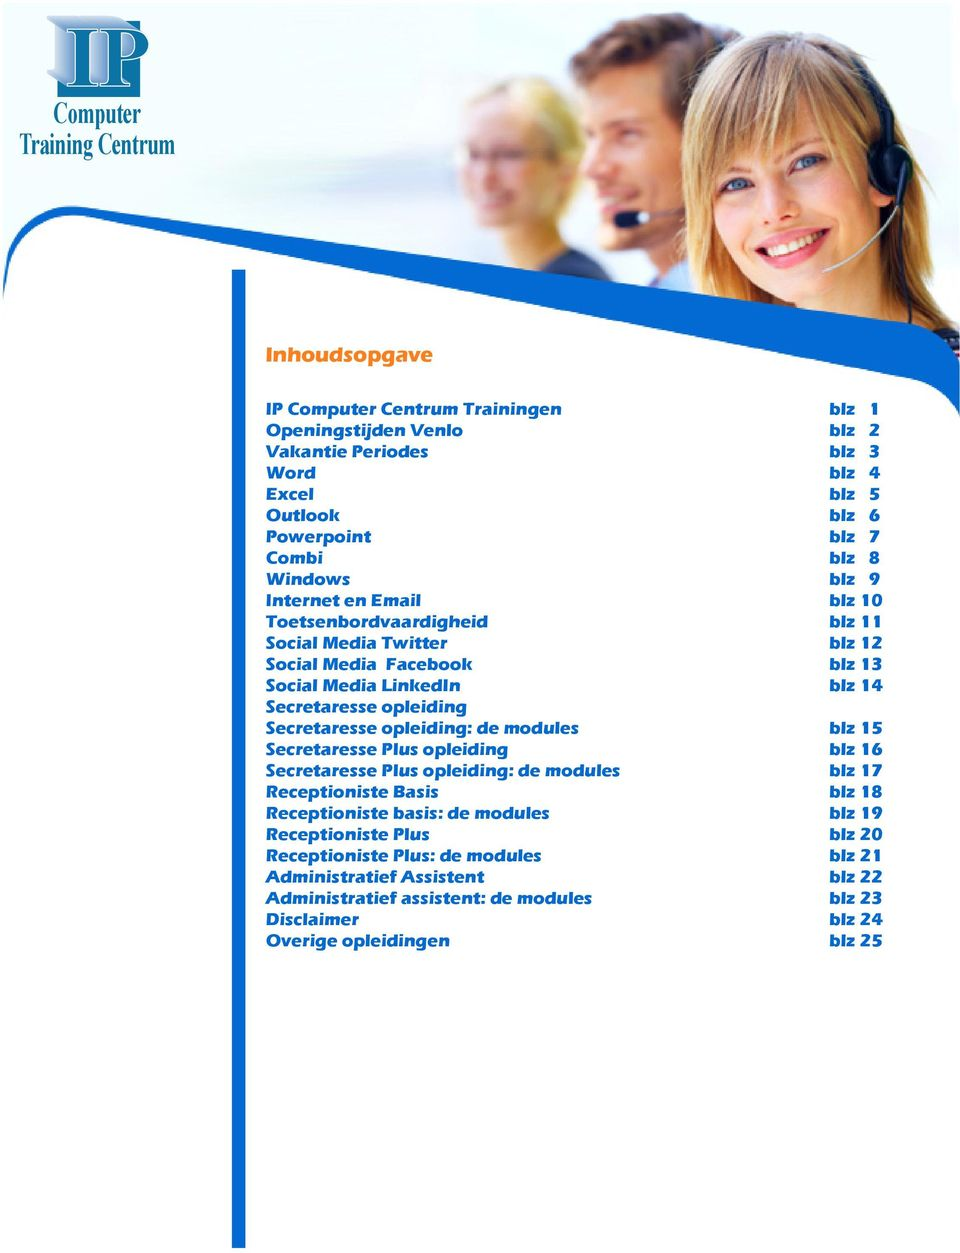 opleiding: de modules blz 15 Secretaresse Plus opleiding blz 16 Secretaresse Plus opleiding: de modules blz 17 Receptioniste Basis blz 18 Receptioniste basis: de modules blz 19